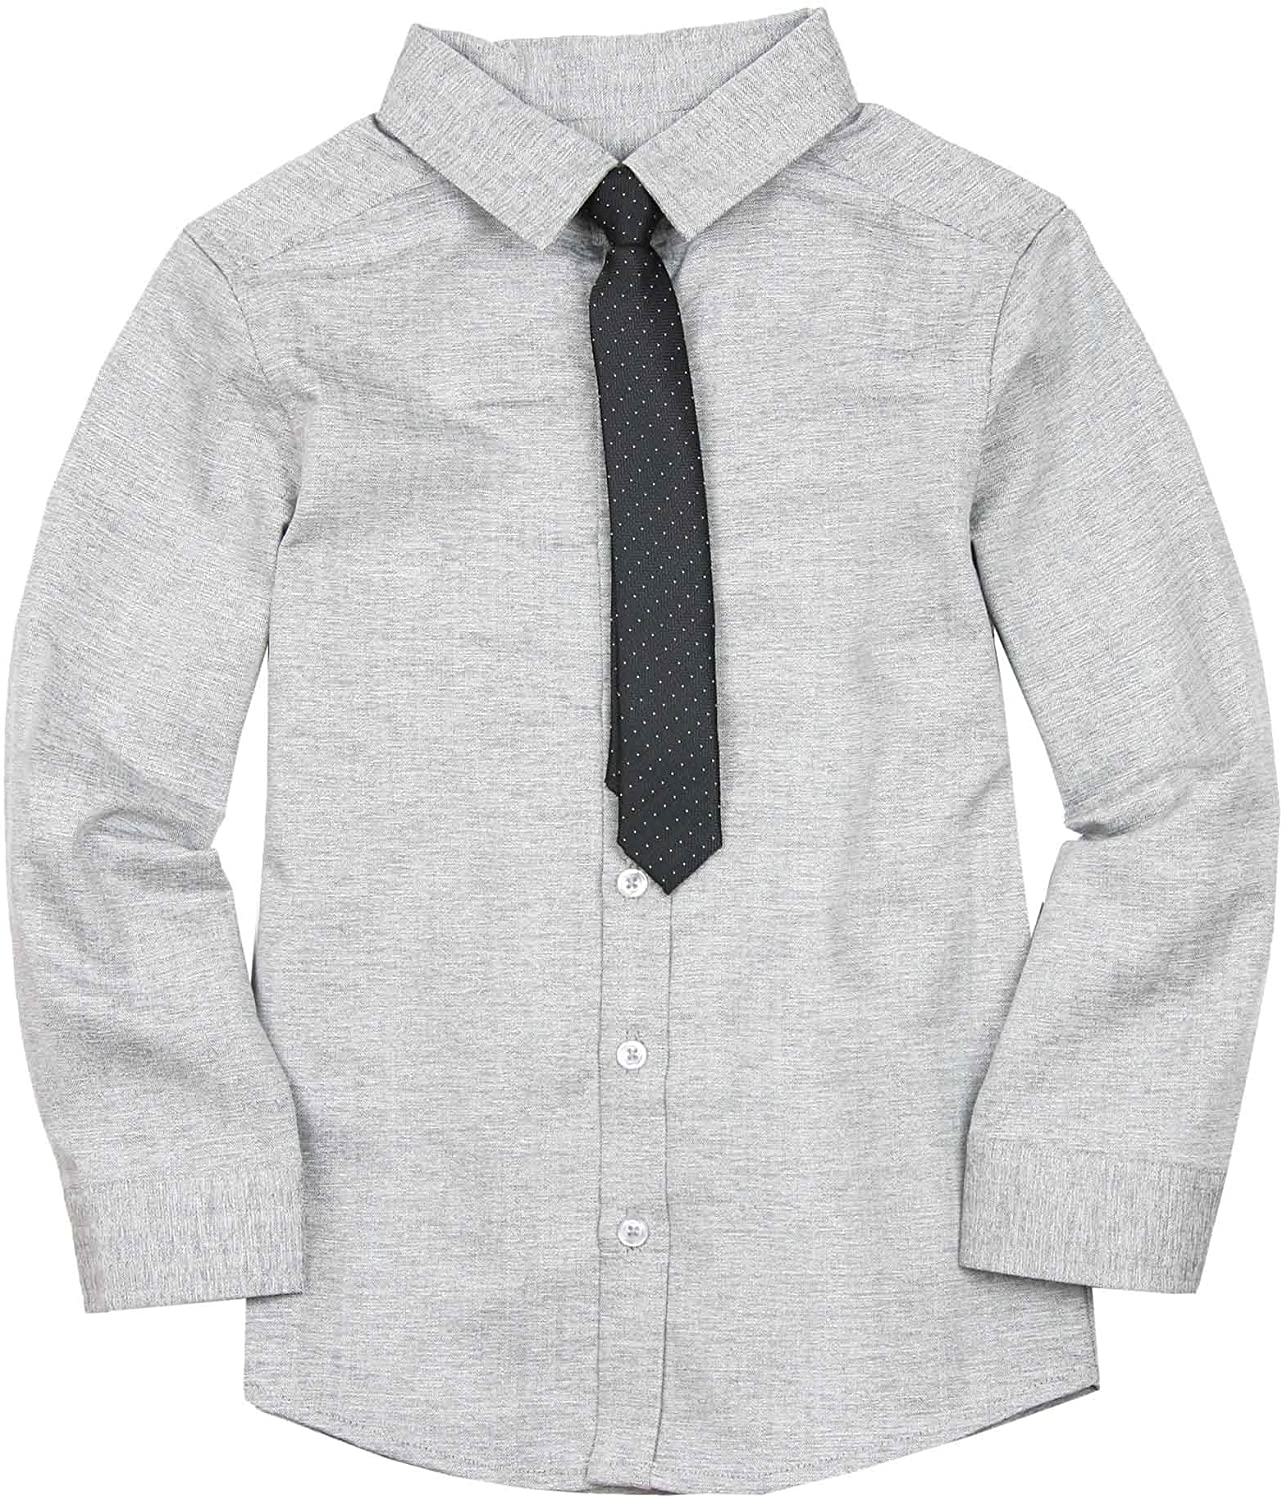 Deux par Deux Boys' Gray Shirt with Tie Maestro!, Sizes 18M-12